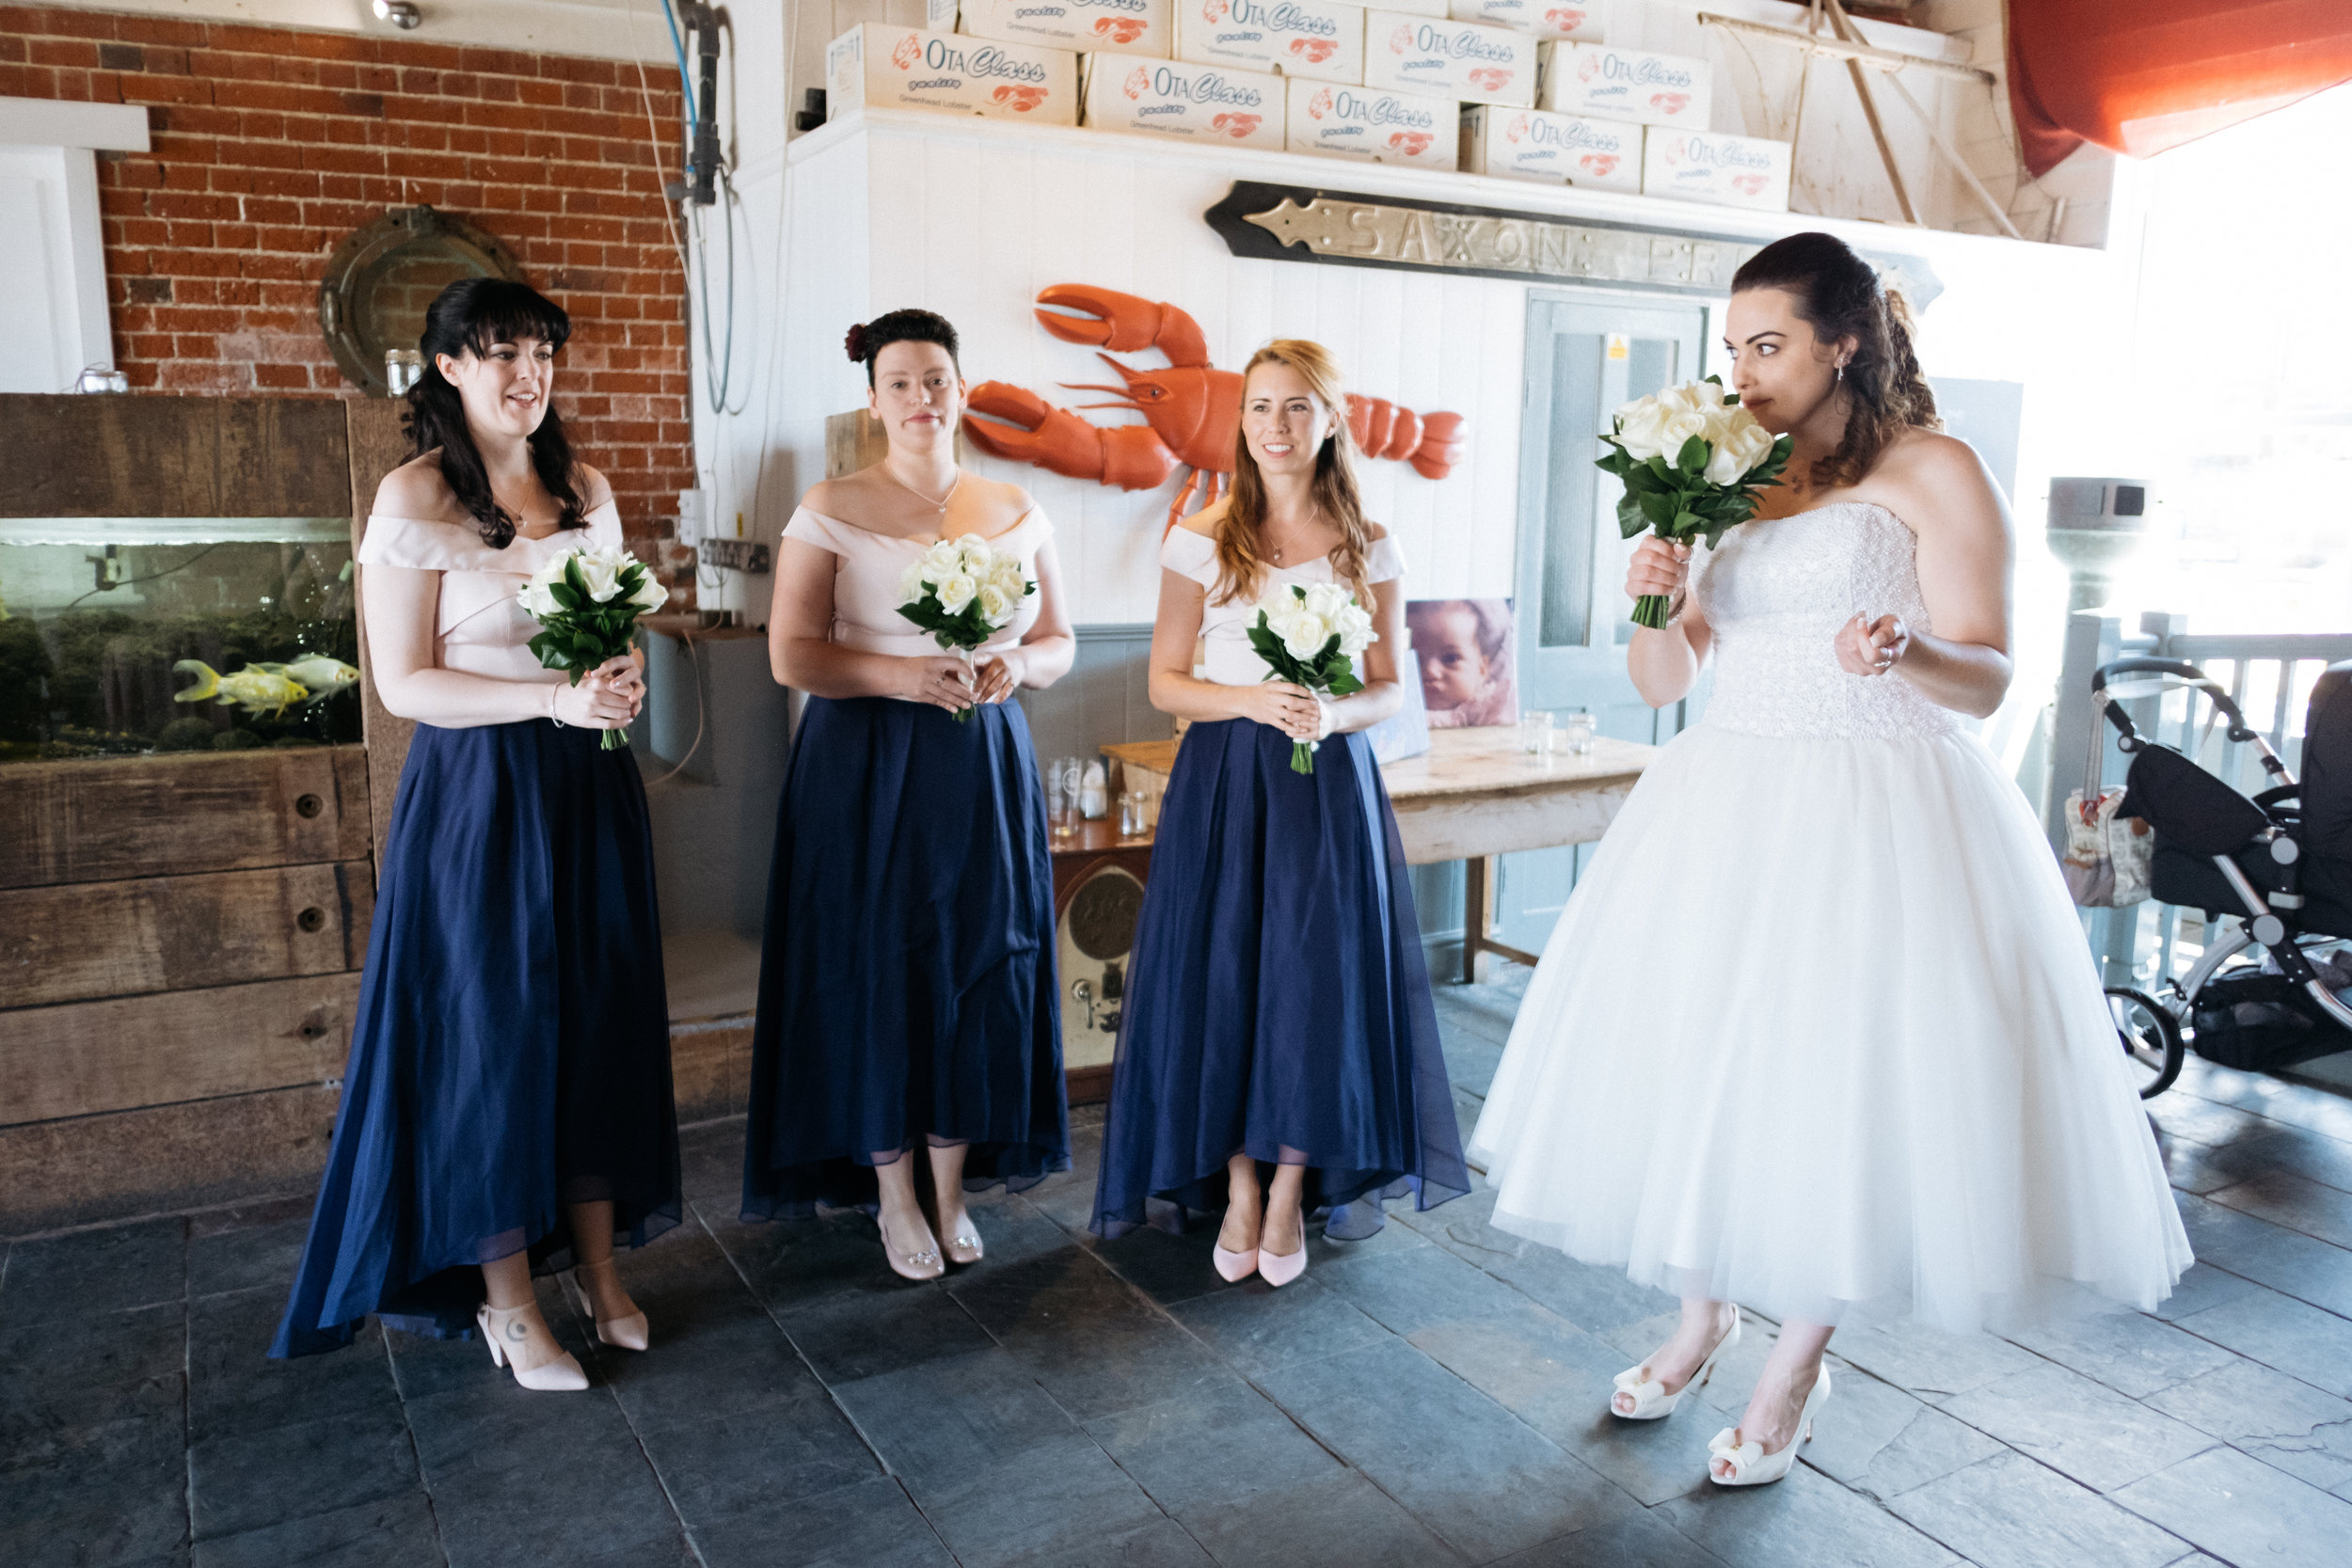 Bride and bridesmaids at East Quay wedding